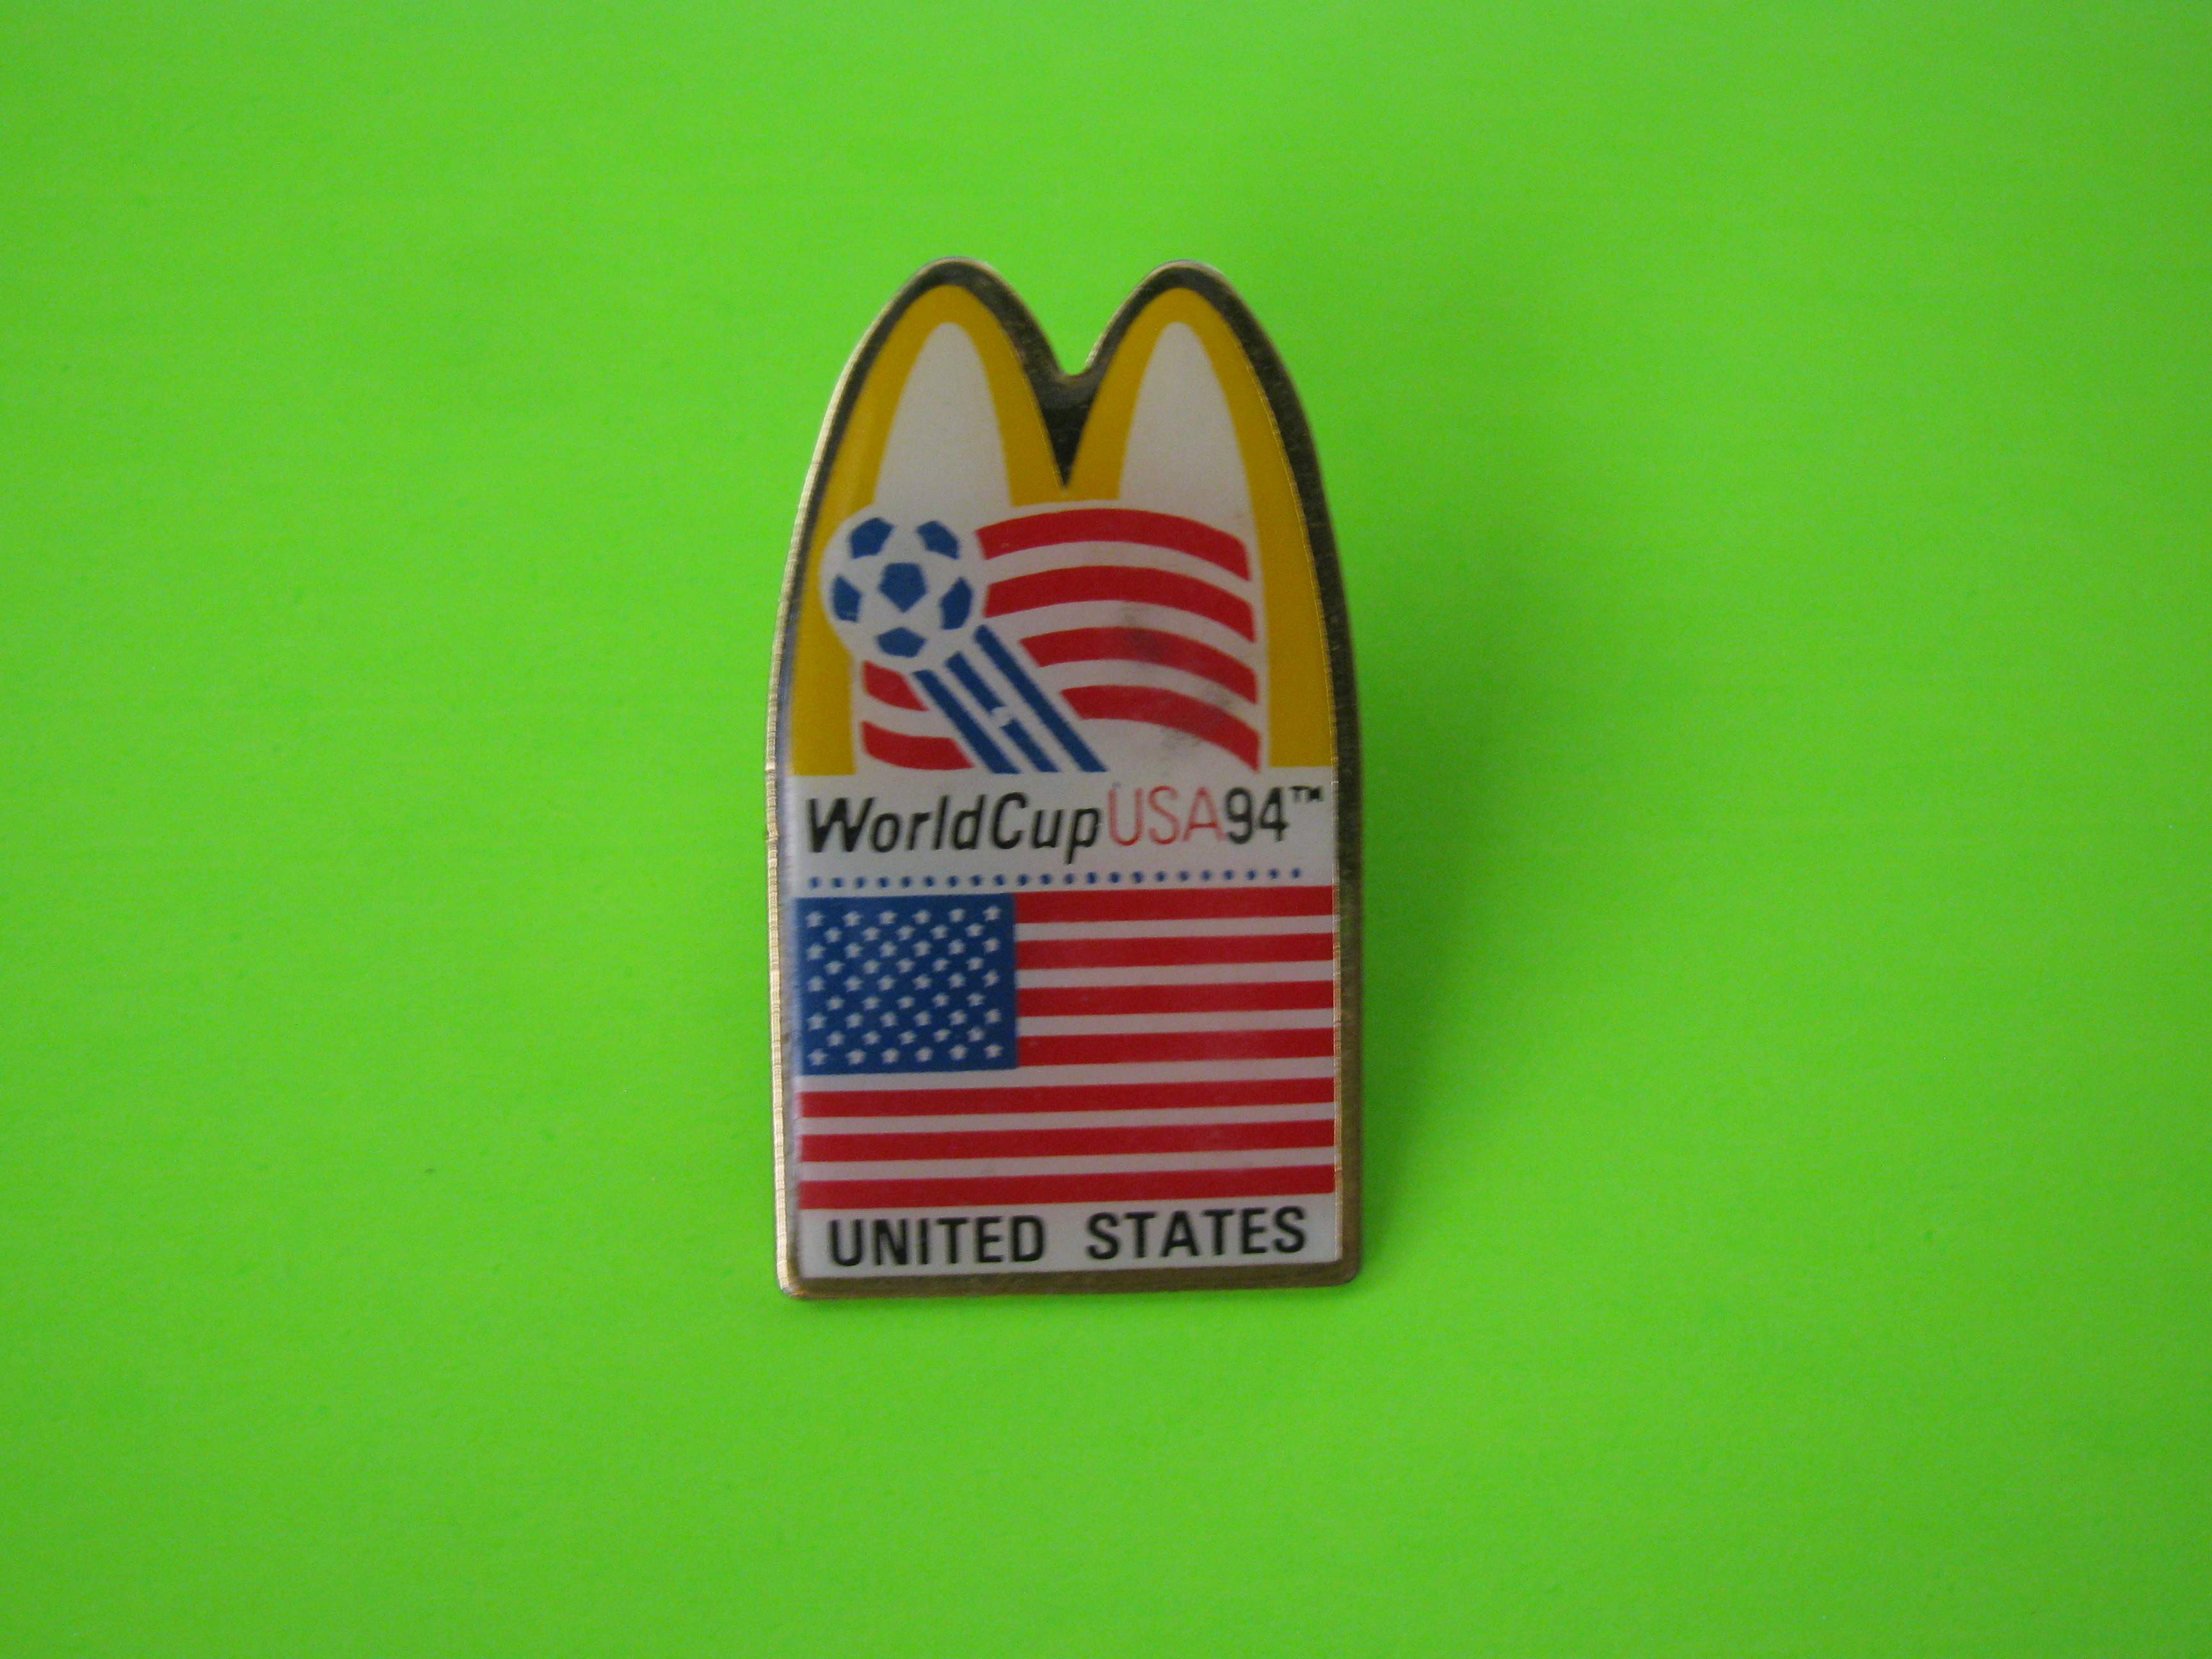 1994 World Cup USA McDonald's Team USA Soccer Pin with Butterfly Clutch